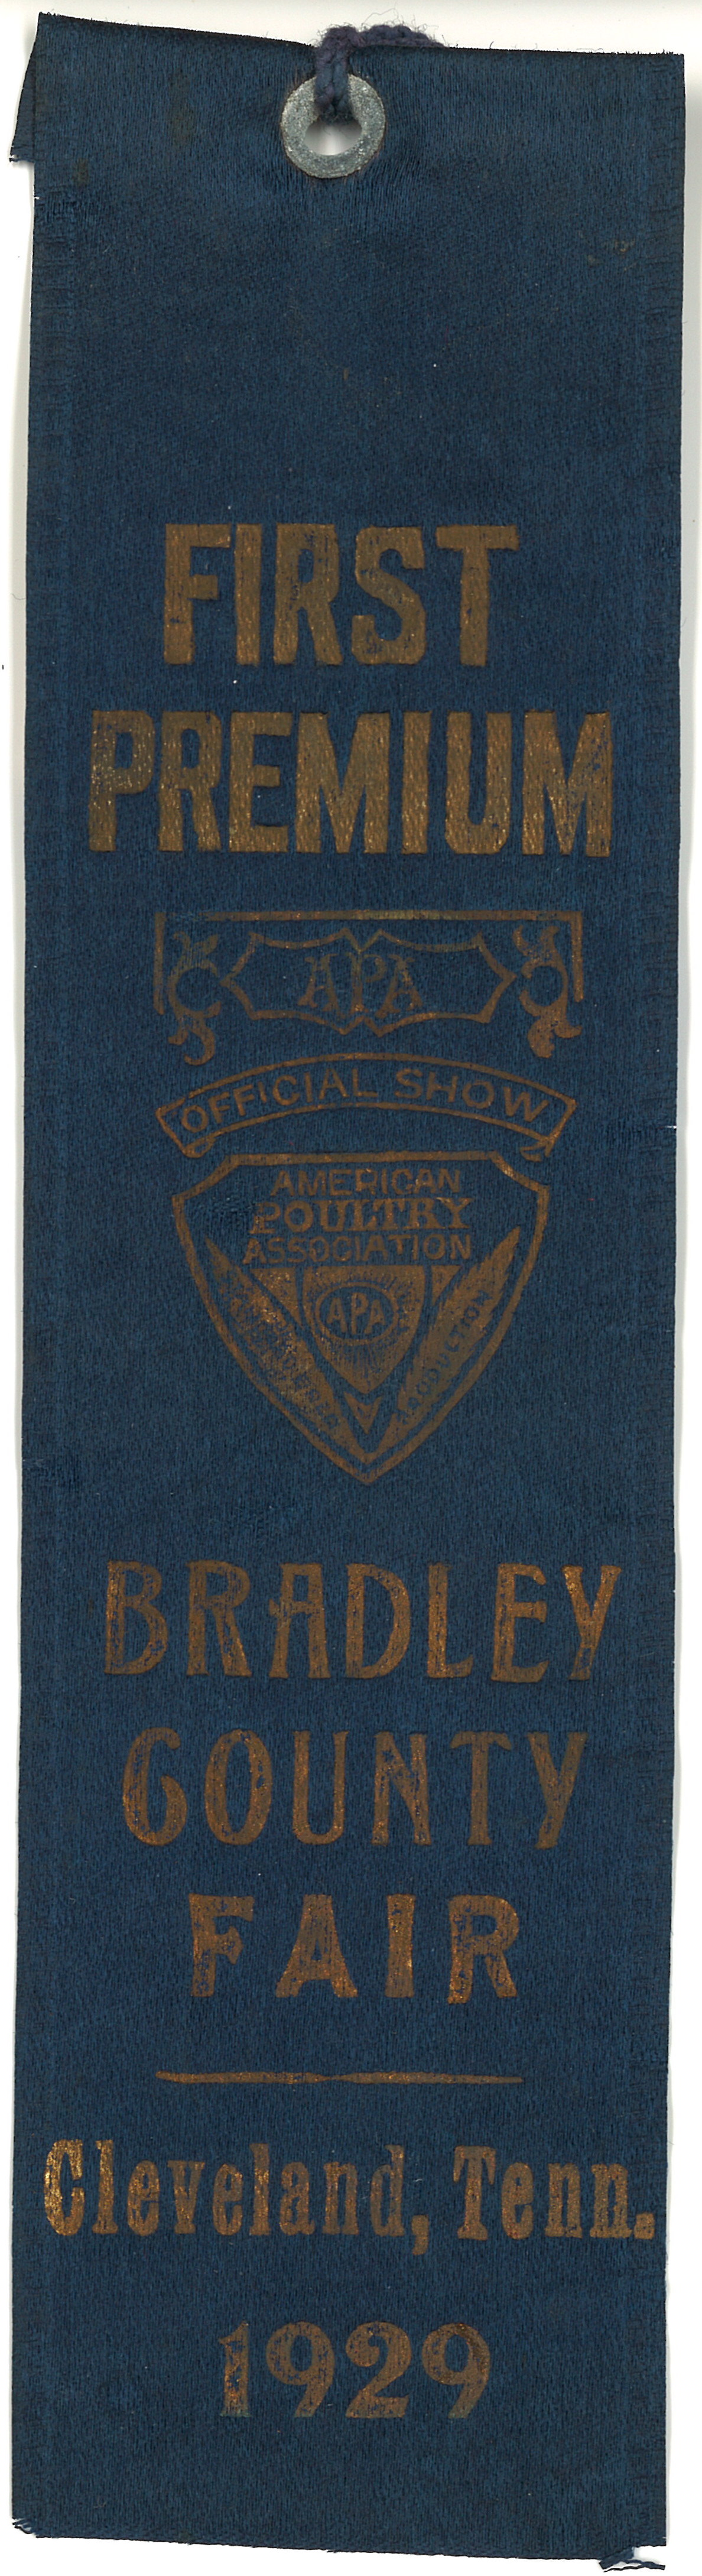 First Premium Ribbon from American Poultry Association at the Bradley County Fair, 1929.